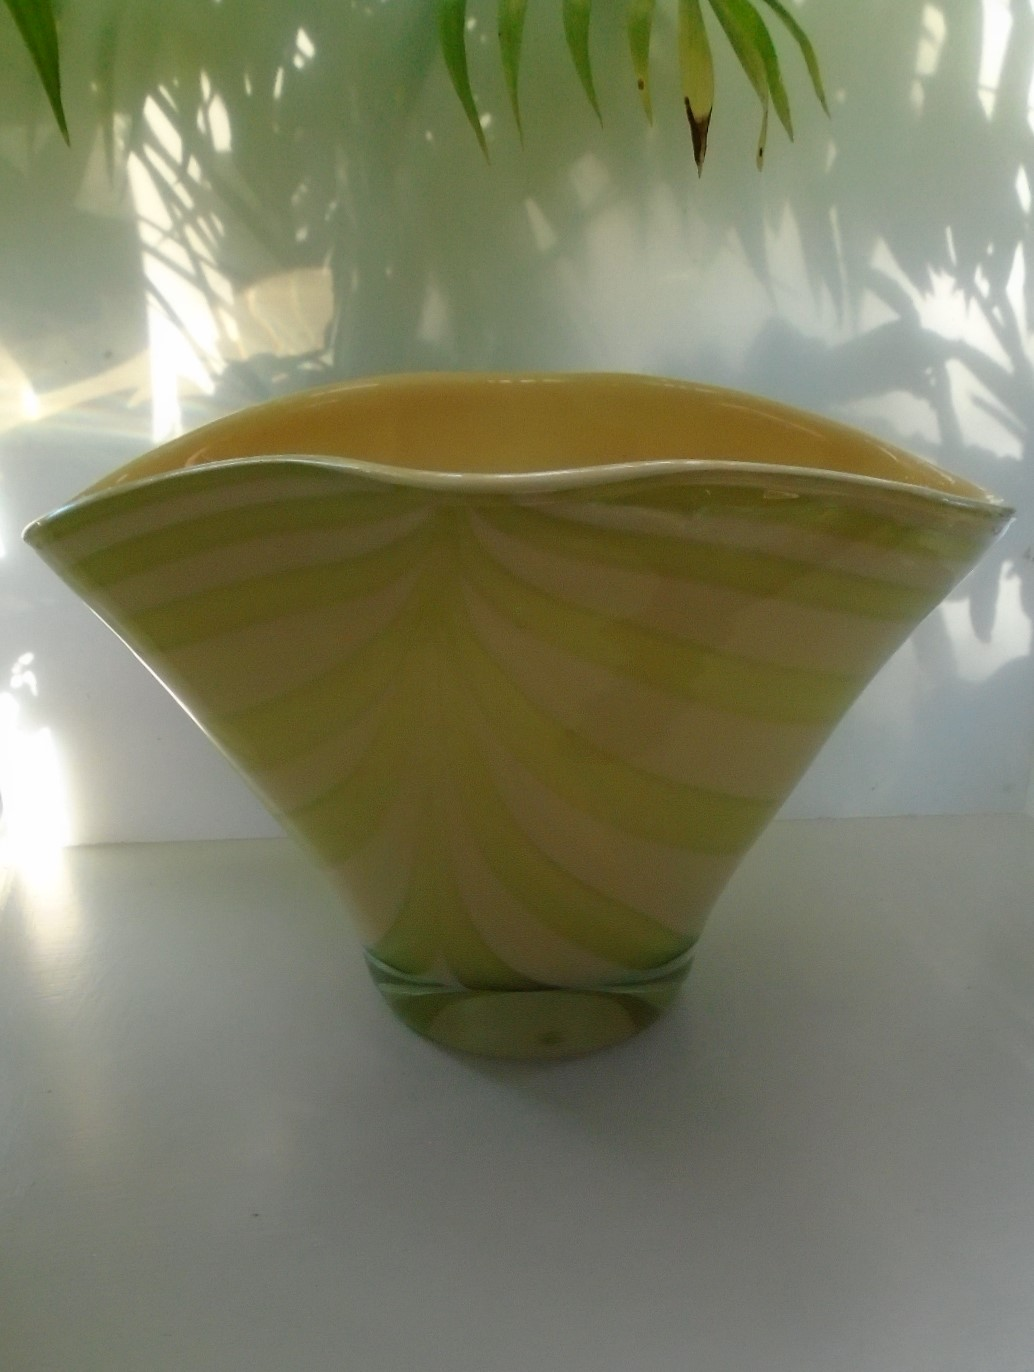 Large stunning 60s VINTAGE MURANO GLASS BOWL in Peach with a light green swag decoration.  29.5cms wide and 18.5cms high